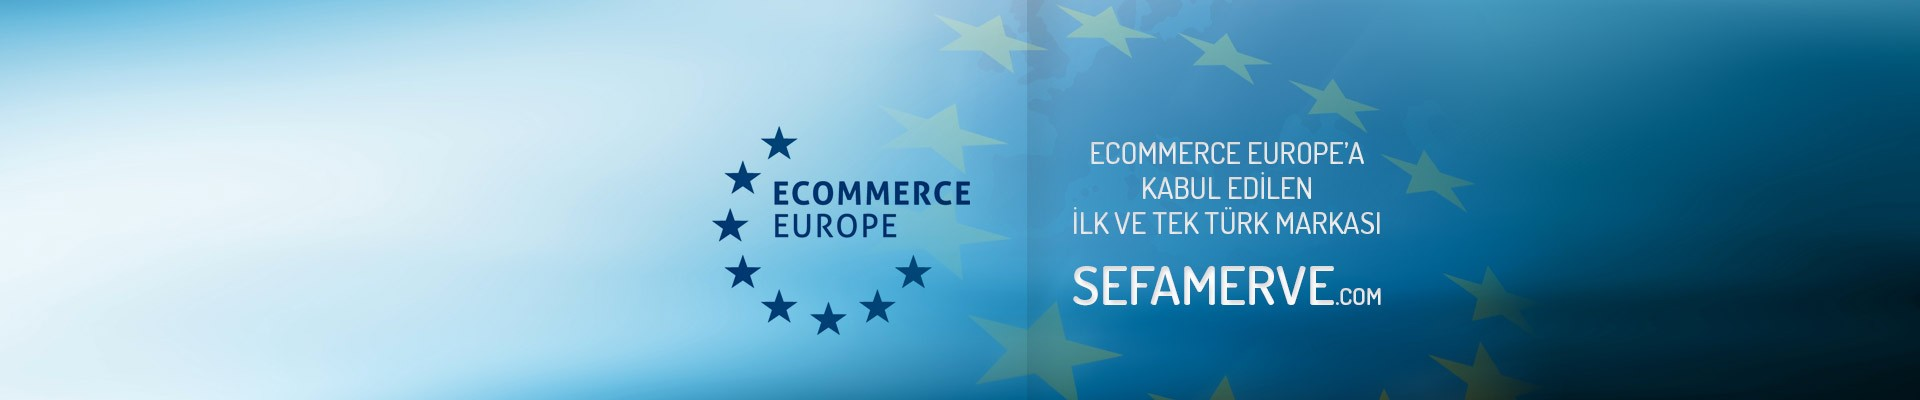 Sefamerve E-commerce Europe